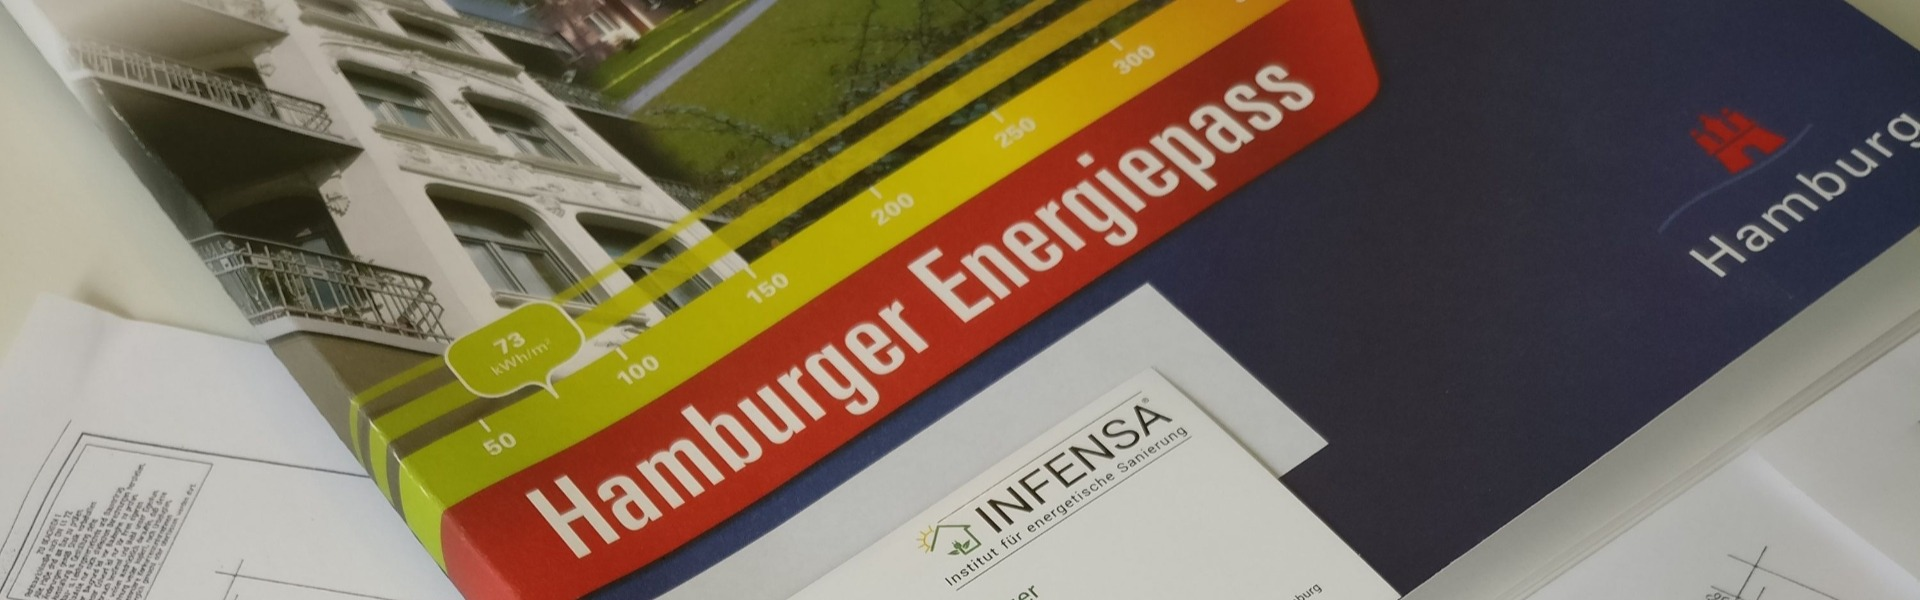 Hamburger_Energiepass_INFENSA (2)